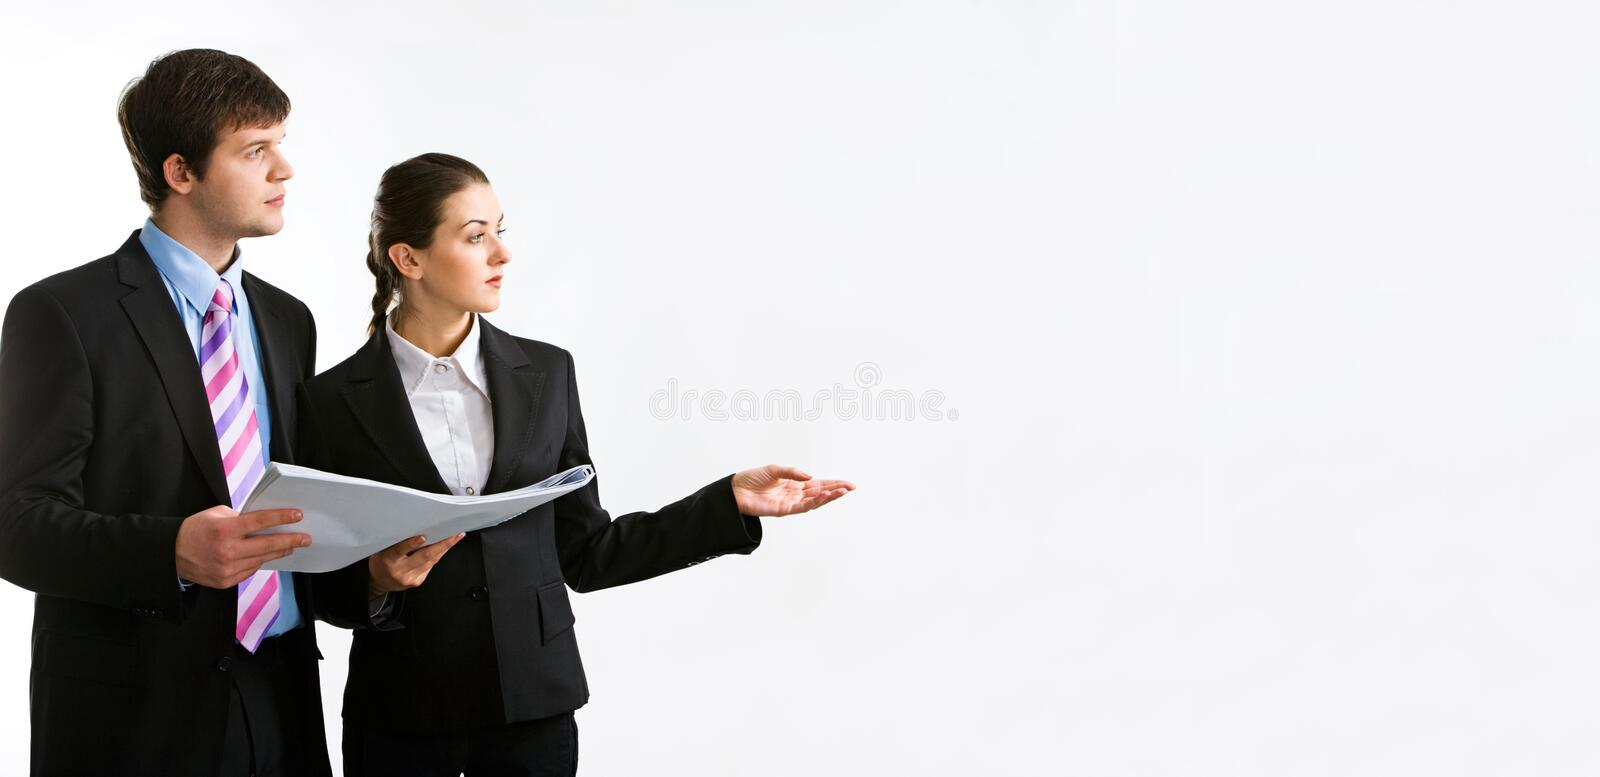 Two people. Image of two business people holding a document and looking at something